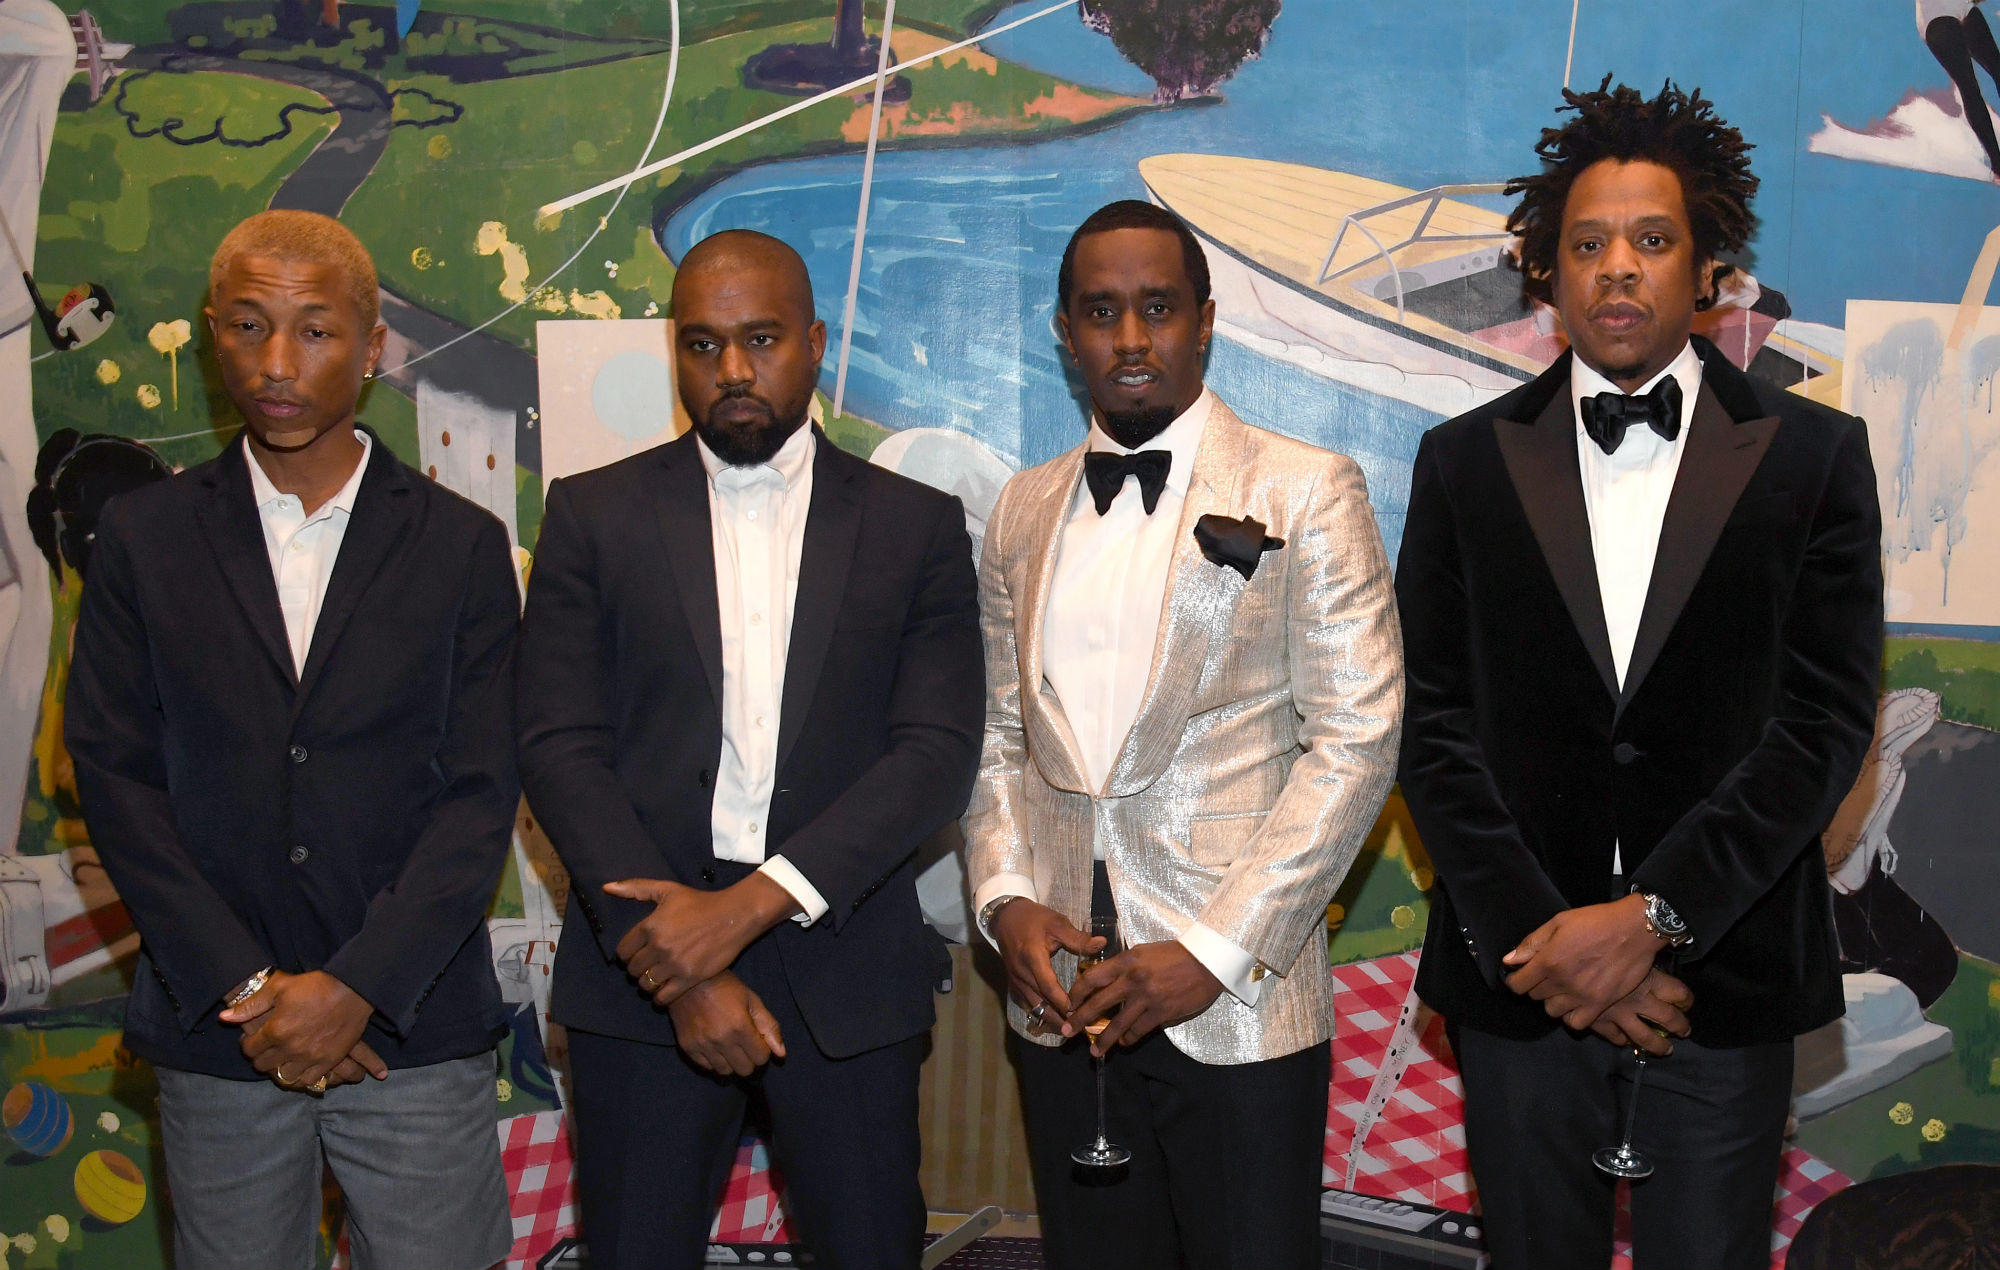 Diddy Birthday Party  Diddy shows off extravagant 50th birthday party in new video